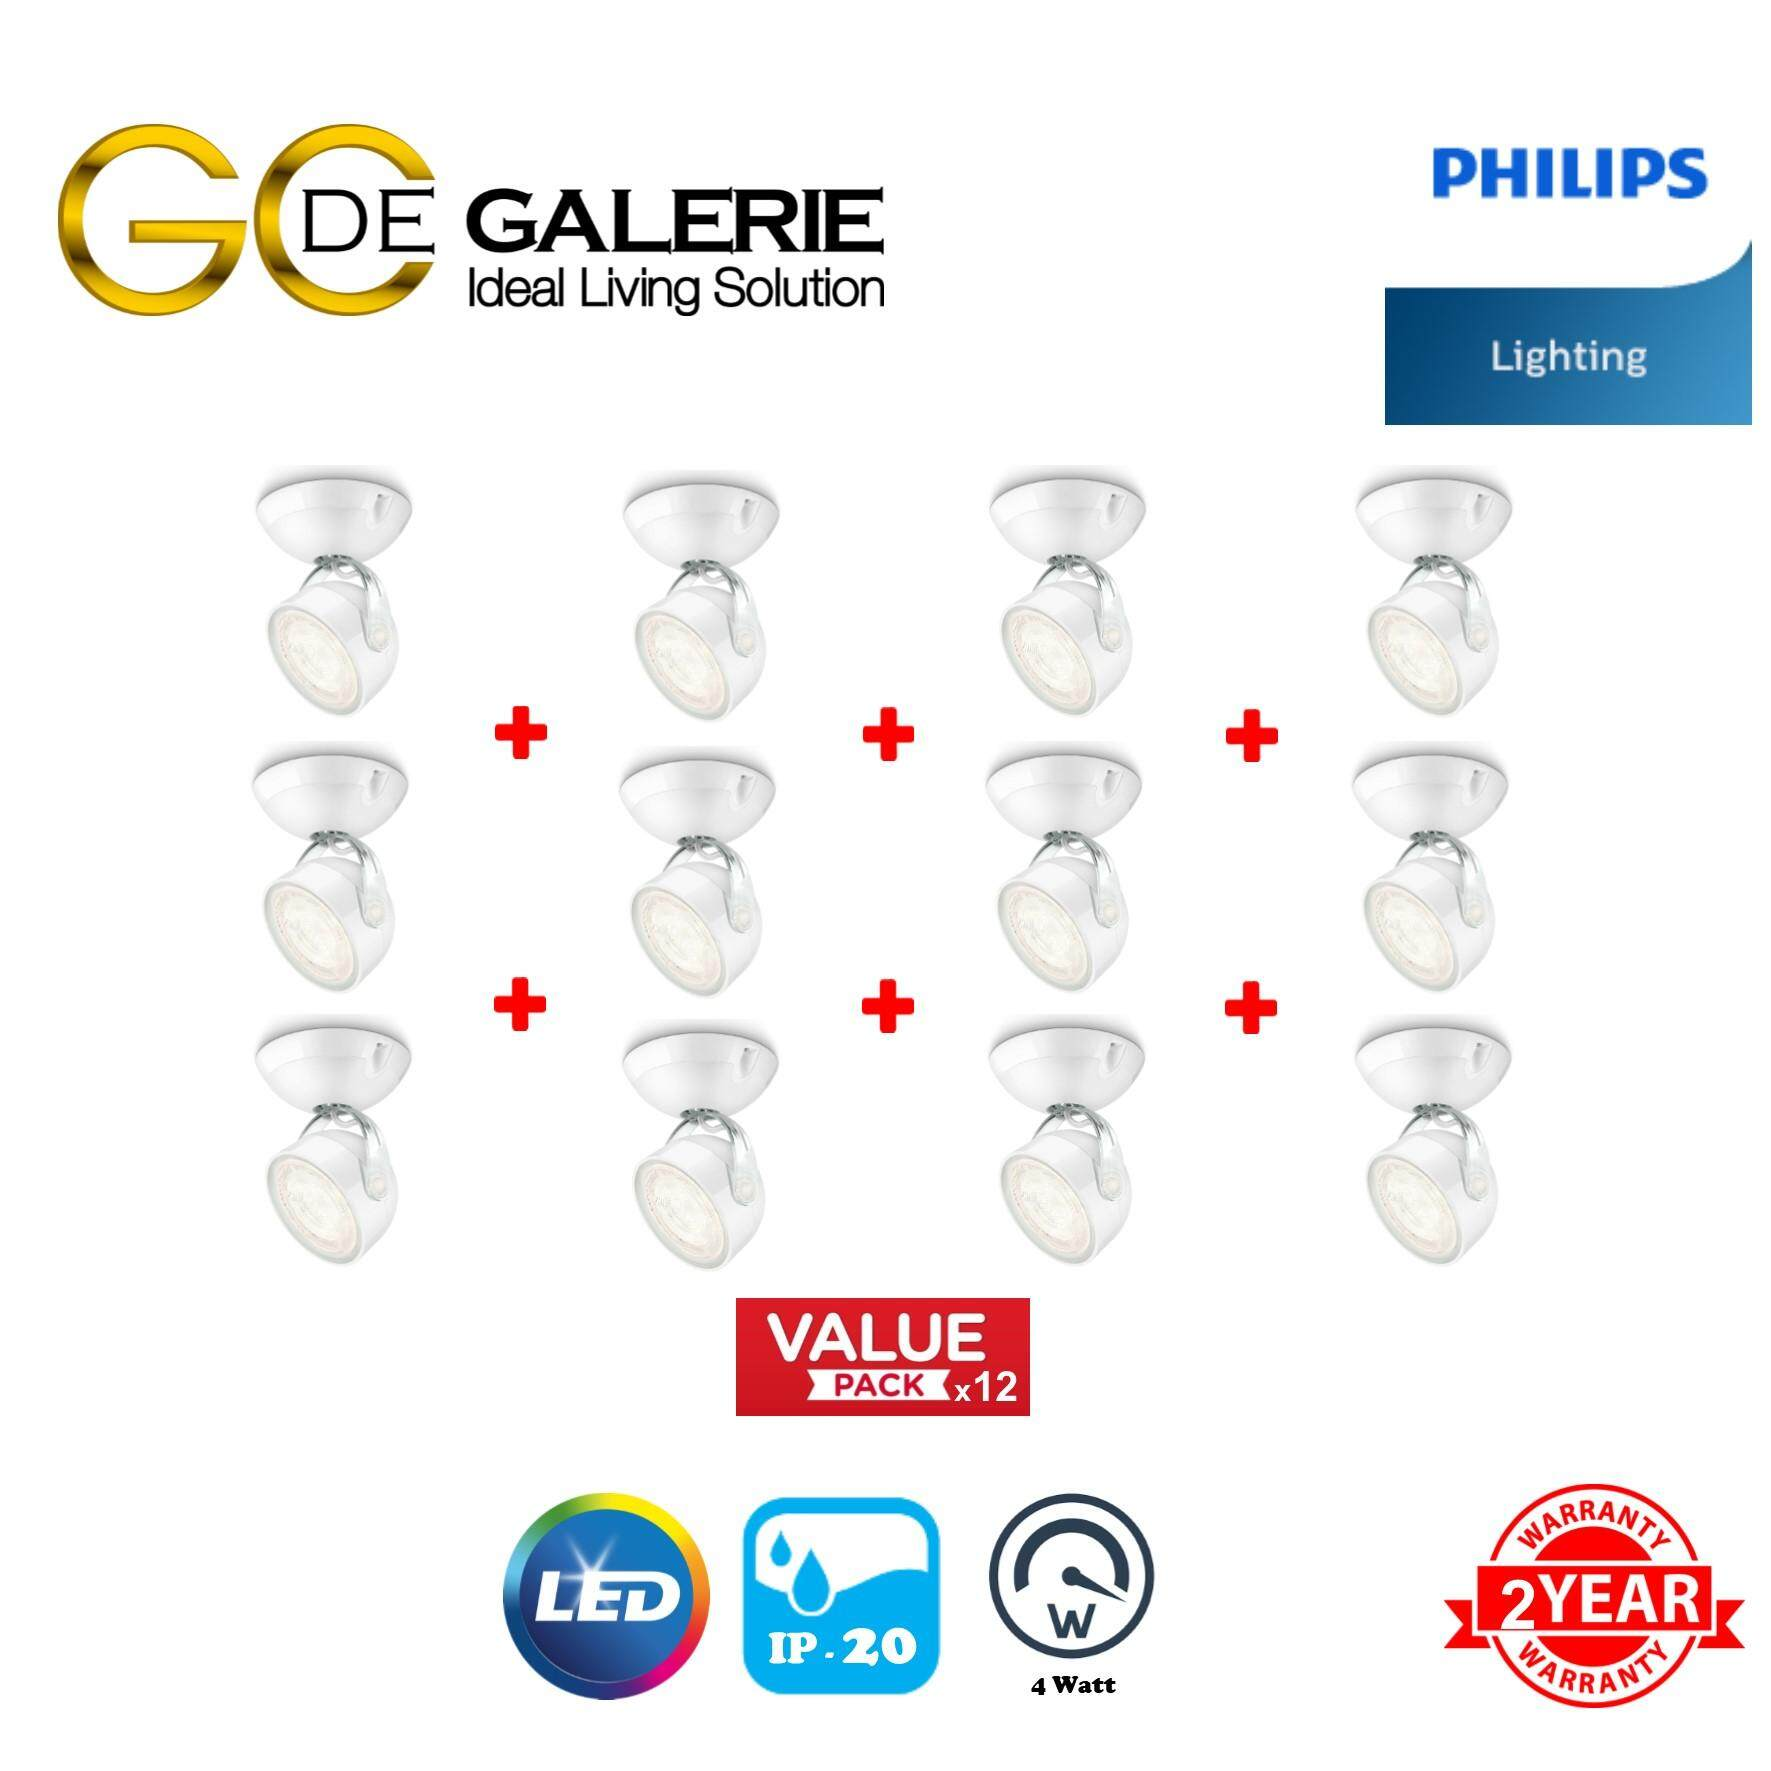 SPOTLIGHT LED PHILIPS DYNA 53235/31 WH 1x4W (12 PACK)